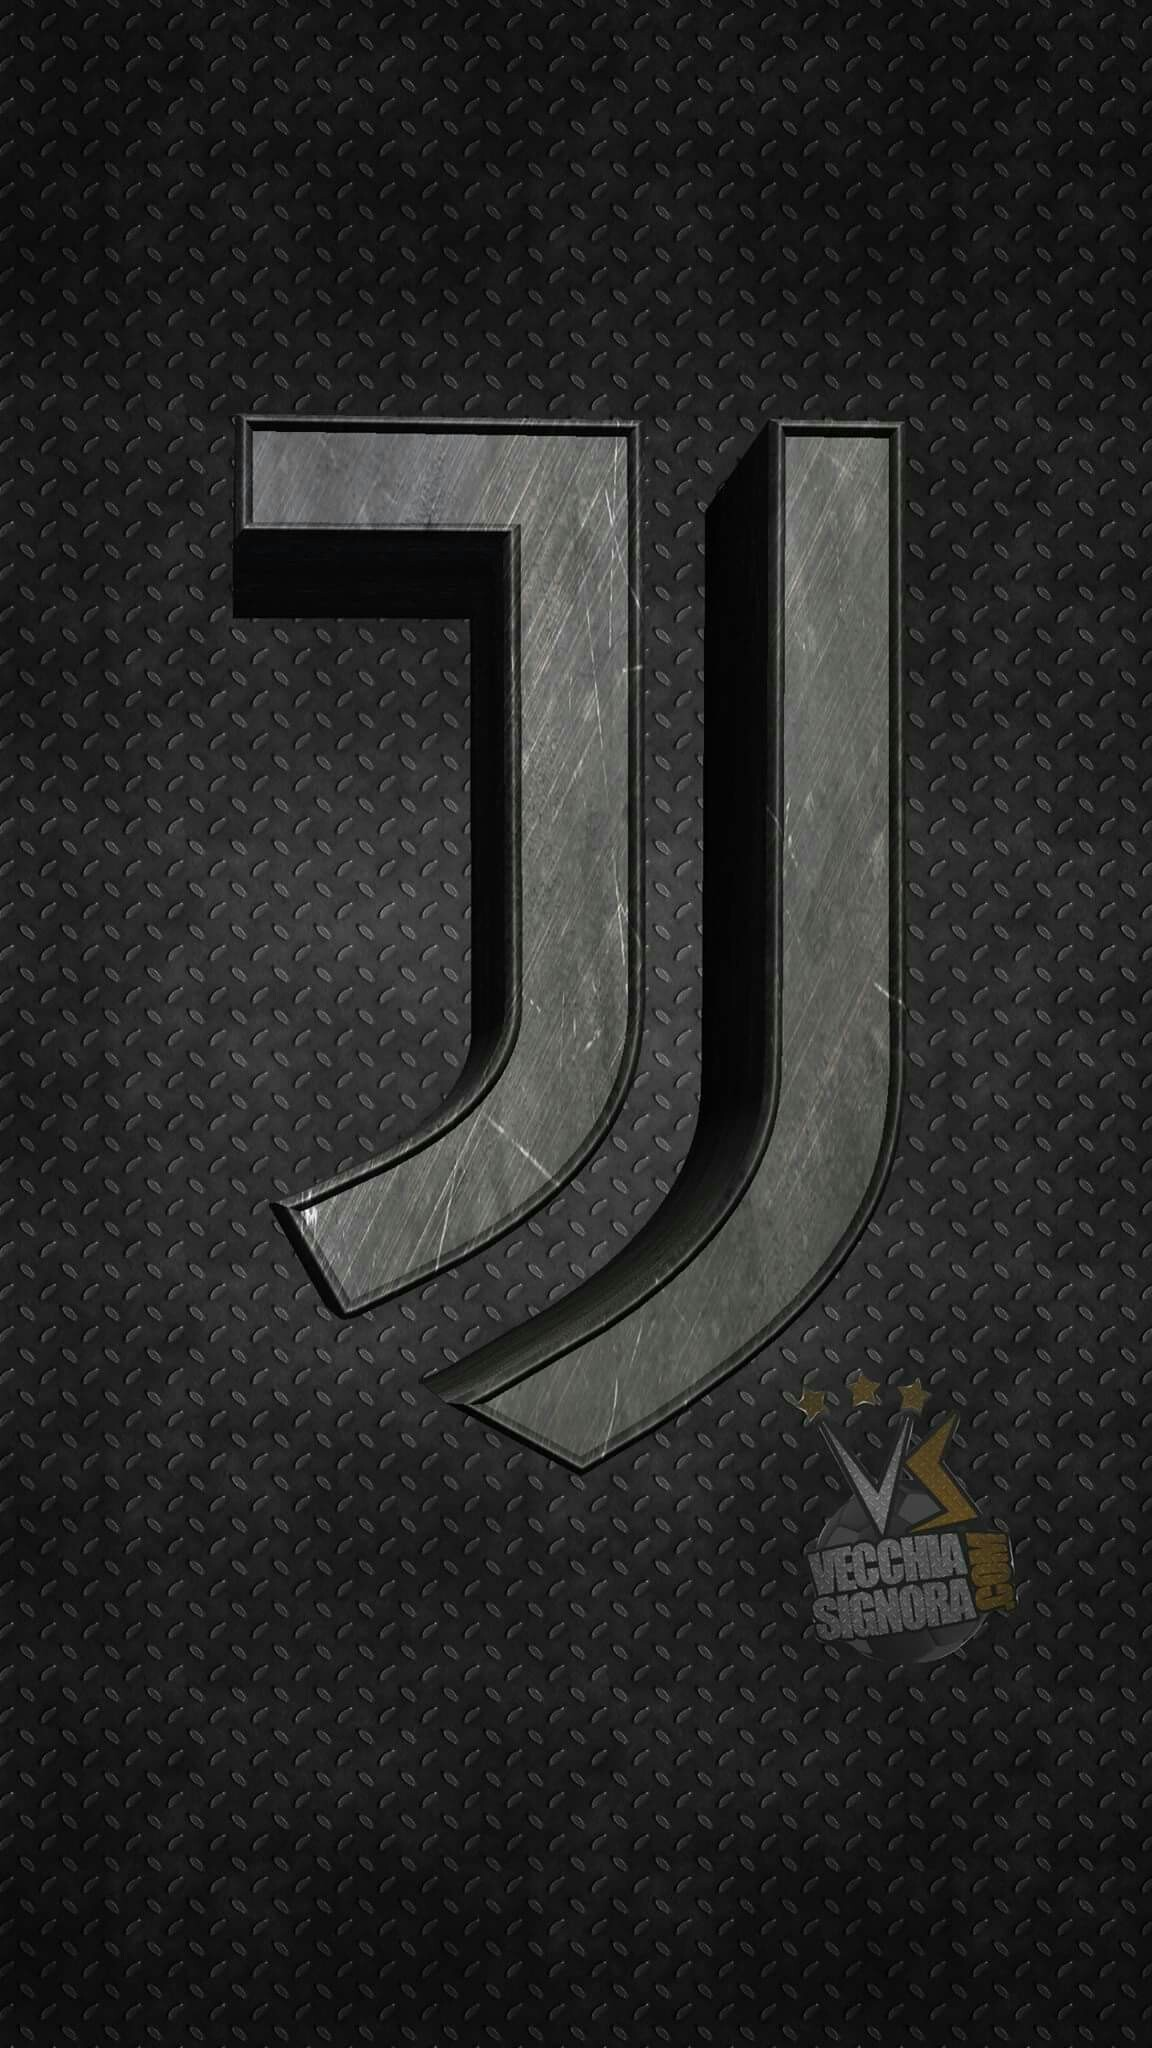 Juventus Wallpaper Iphone X Juventus Logo Wallpaper 183 ① Wallpapertag